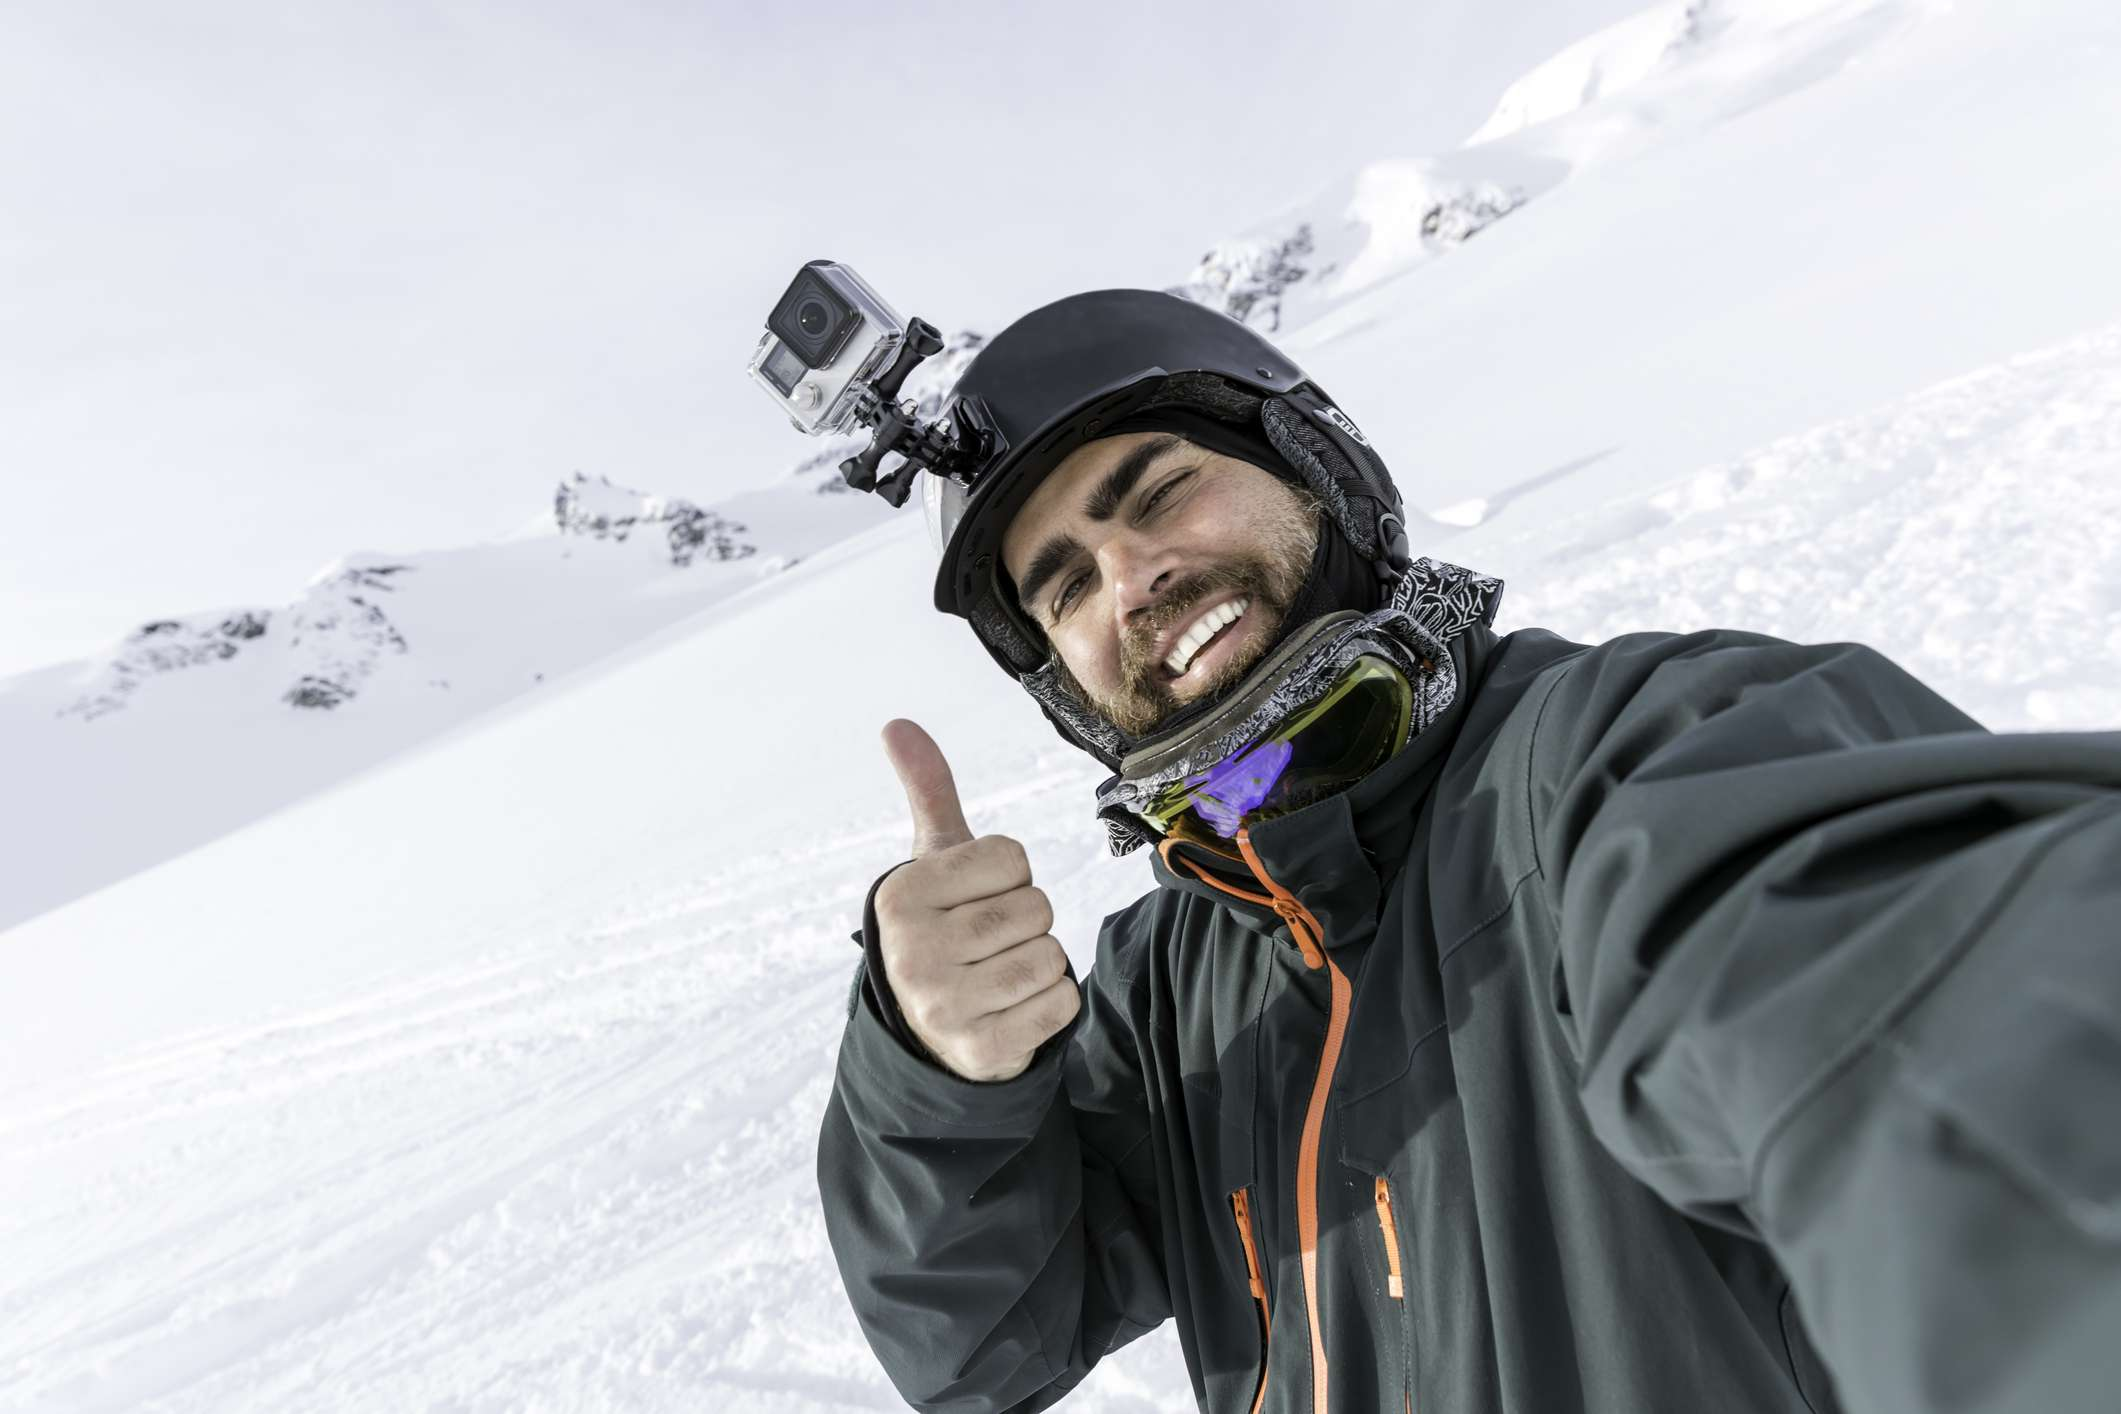 Skier with GoPro in the mountains